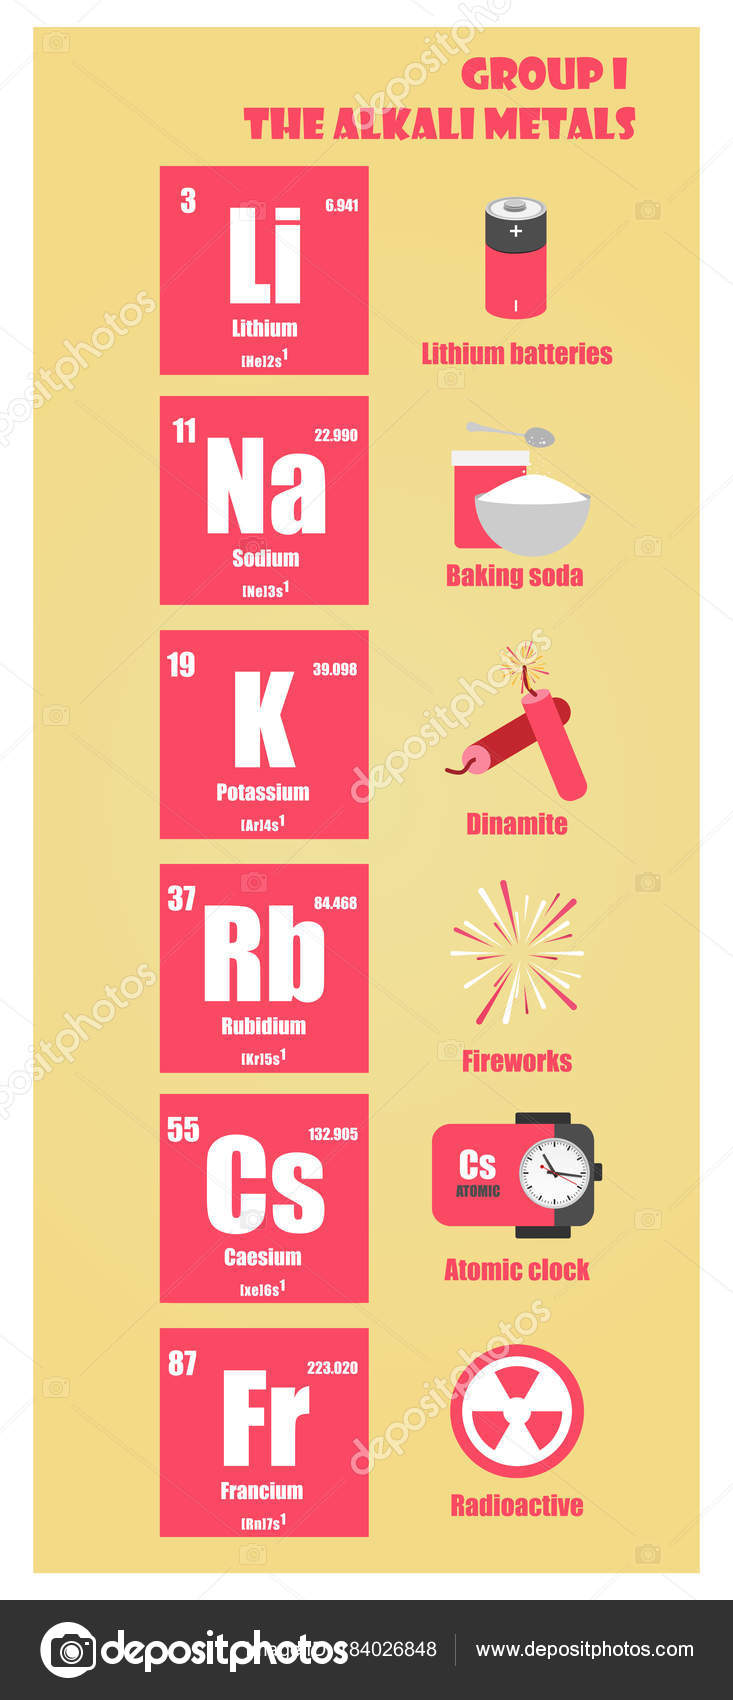 Periodic table of element group i the alkali metals stock vector periodic table of element group i the alkali metals stock vector urtaz Choice Image